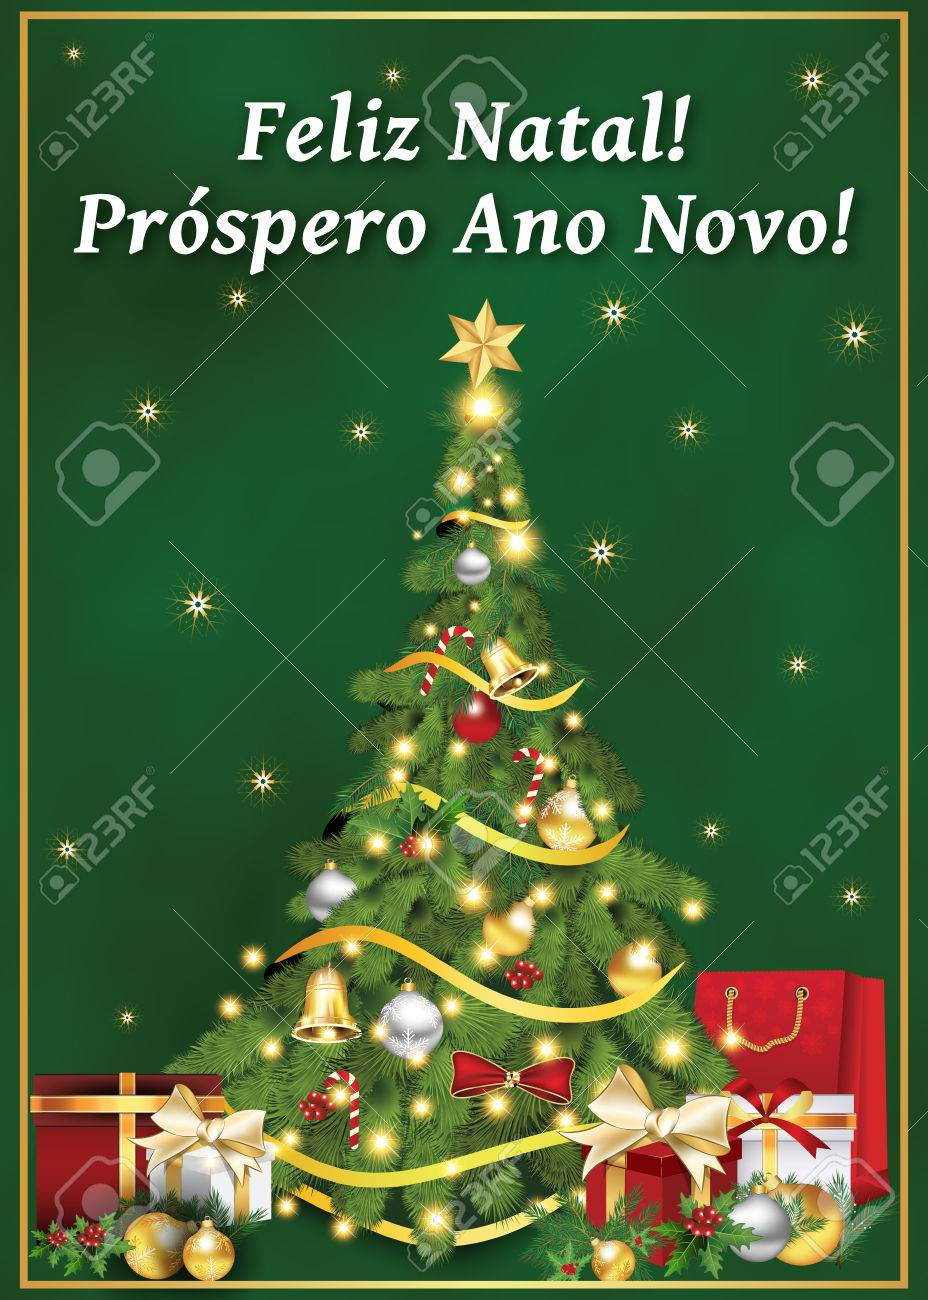 Portuguese Business Greeting Card For Winter Holiday. Text ...